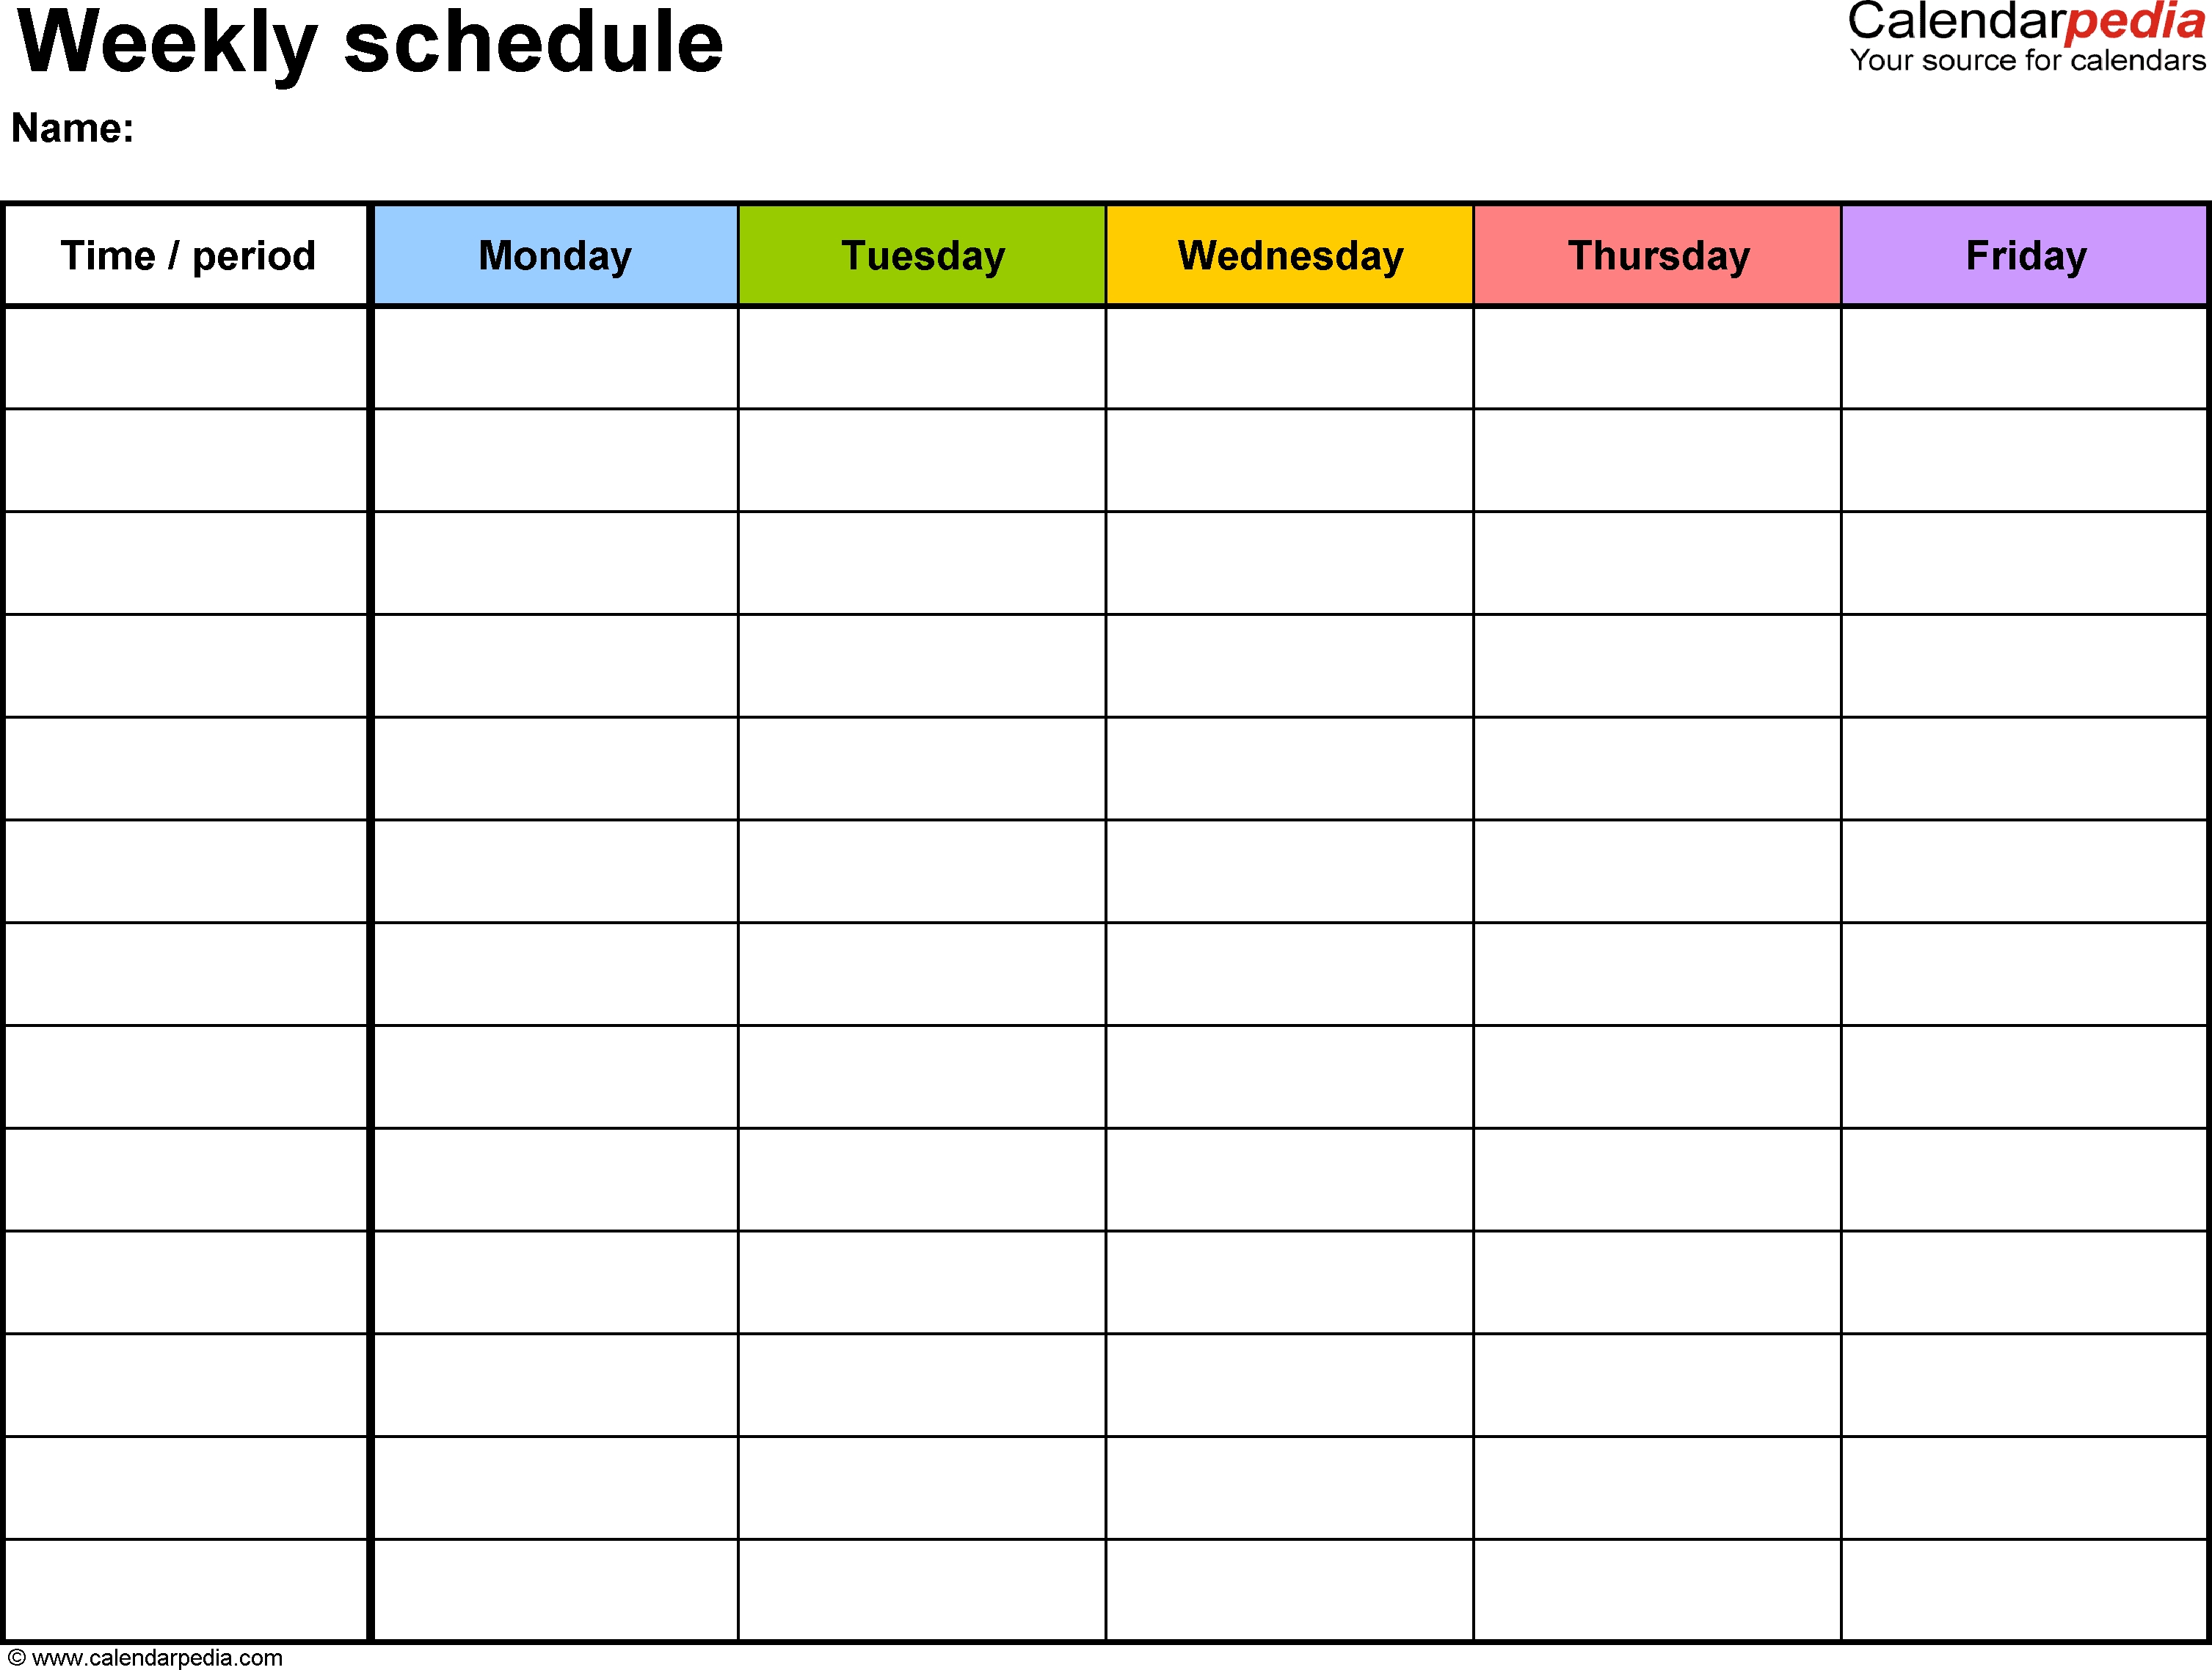 Free Weekly Schedule Templates For Excel - 18 Templates with regard to Blank Calendar 6 Weeks Start On Sunday